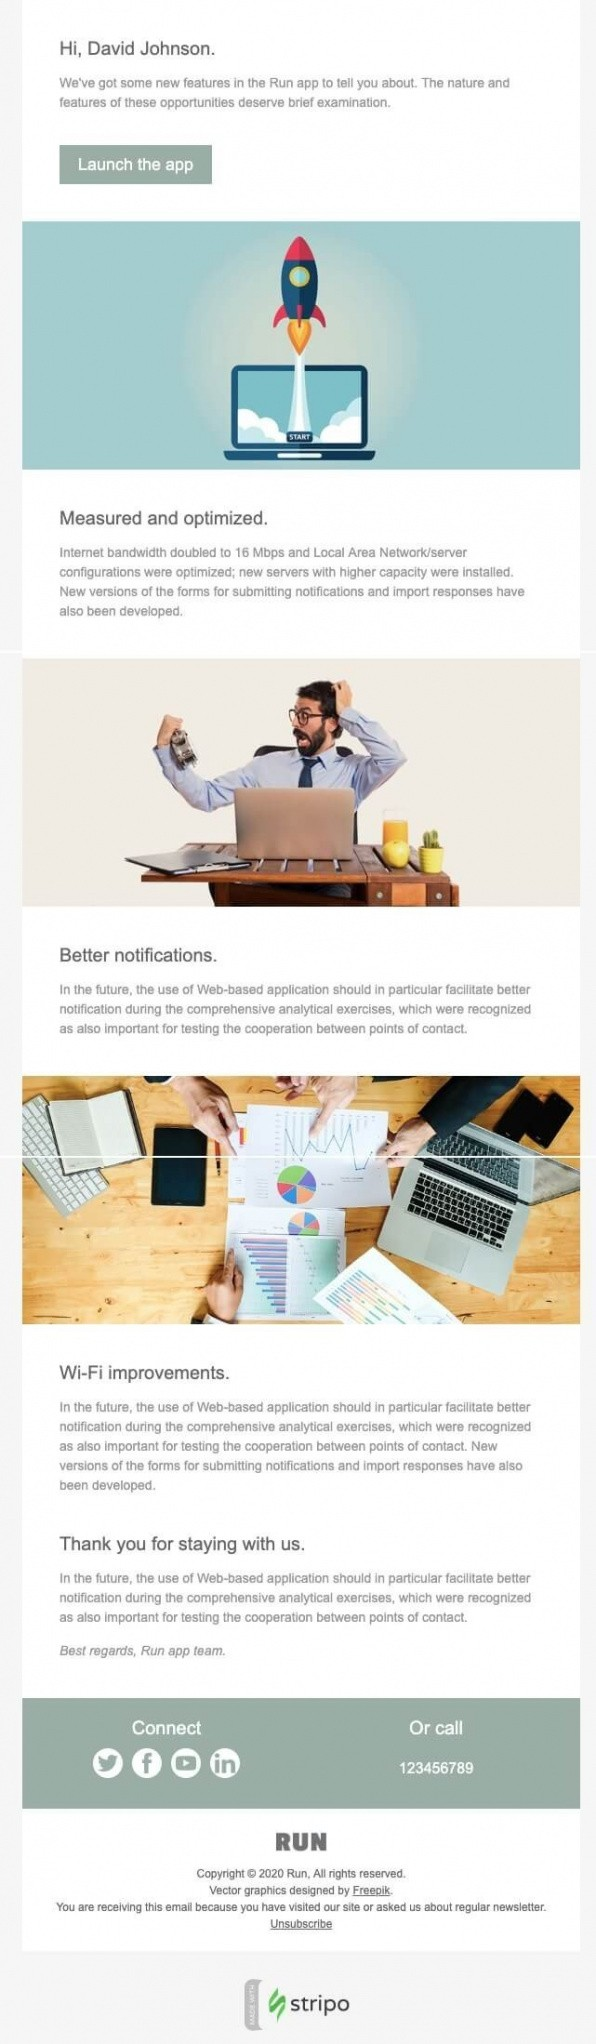 costum product launch email template pdf